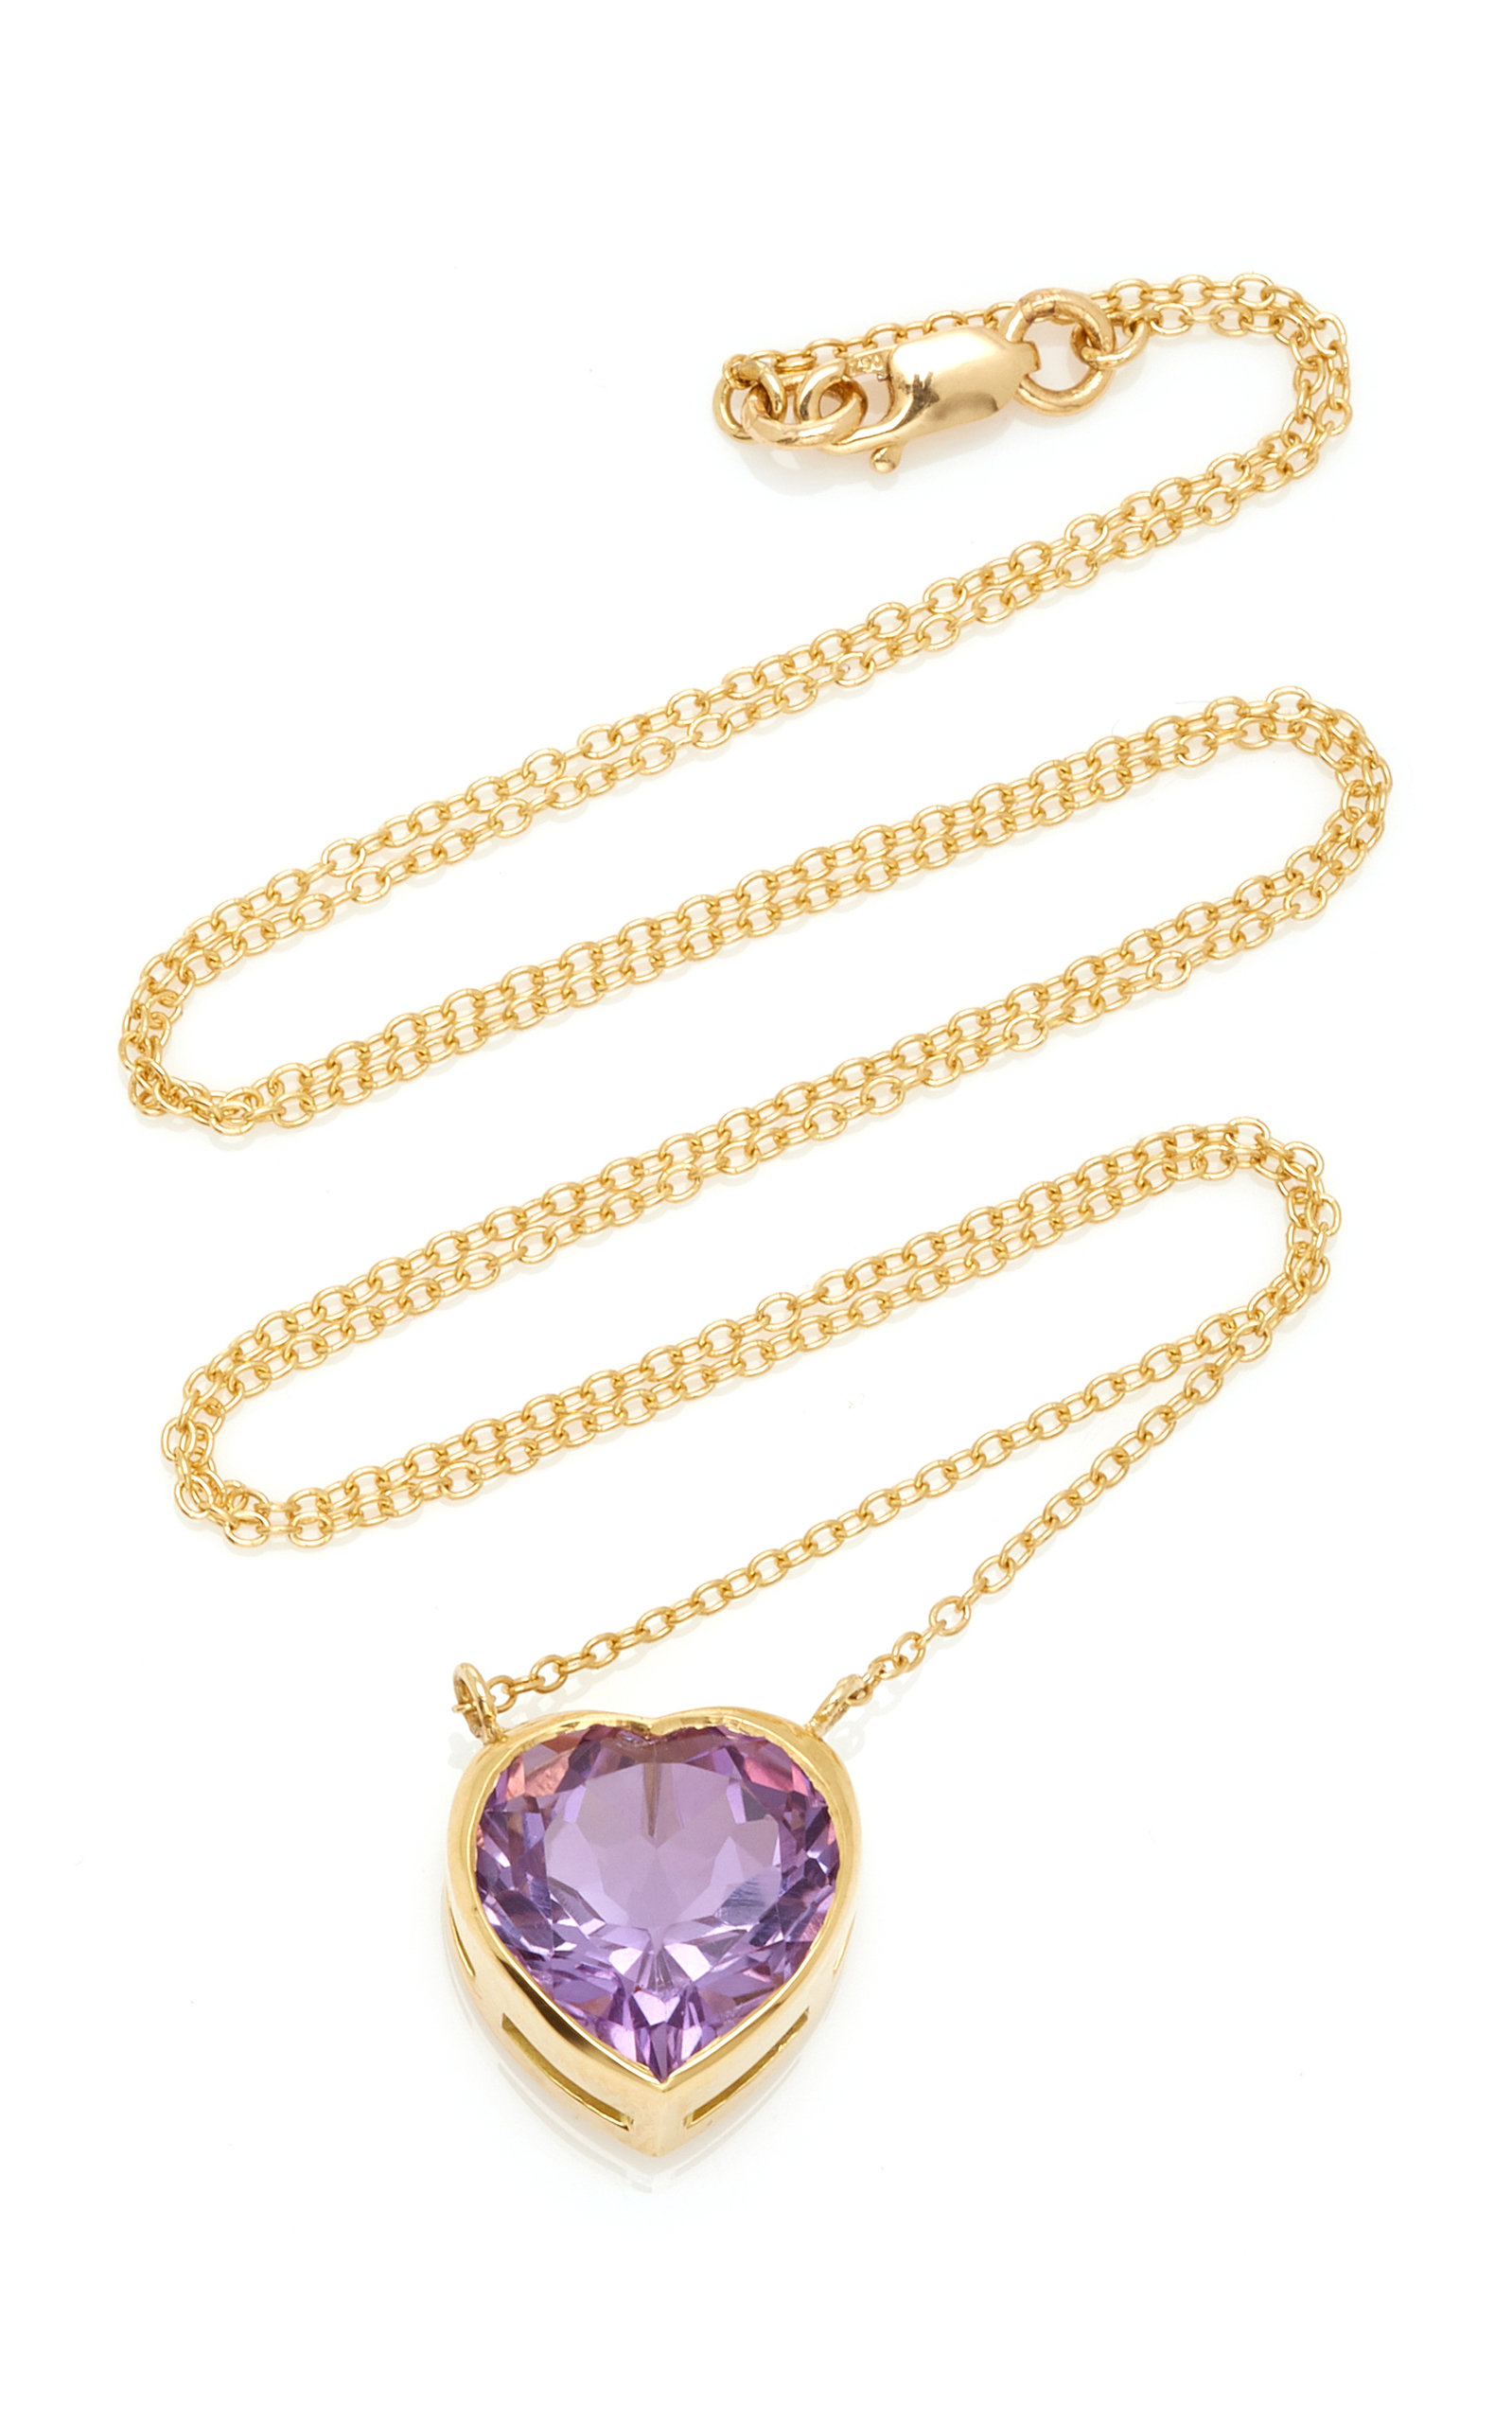 Women's London 18K Gold and Amethyst Necklace